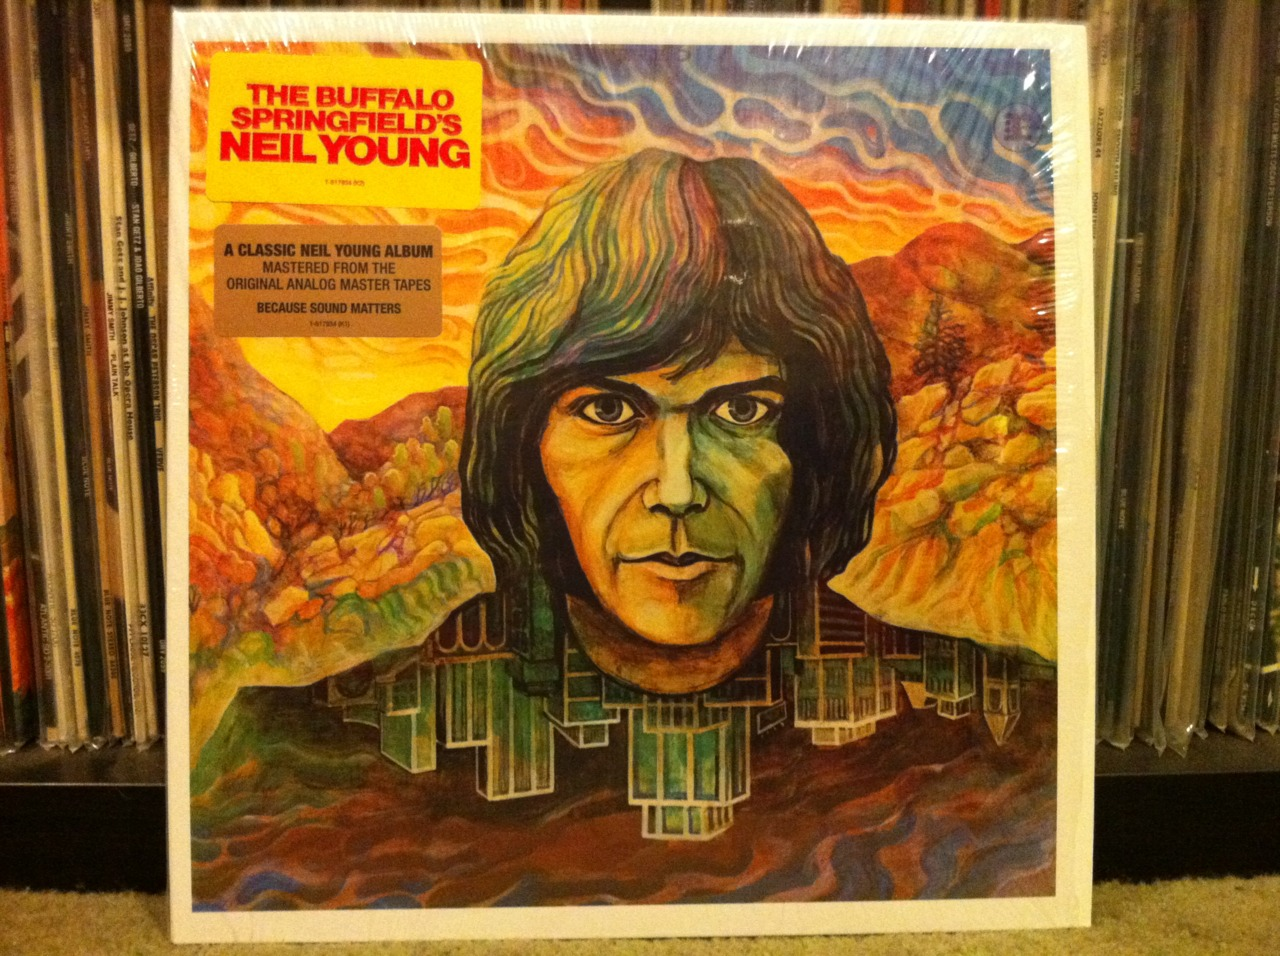 Neil Still Hates It.    Make no mistake. This record is the boiled down essence of genius. I guess I like it more than Neil Young does. But if you take Mr. Young's analysis of his own work too seriously you'd think he was a failure. This is the guy who's been working on a comprehensive box-set treatment of his entire catalog since I was in junior high school. I guess he's got an inferiority complex. That's his problem. This record is awesome.   Neil's eponymous album is nearly perfect in every way. It's the perfect transition record  between Buffalo Springfield and the Crazy Horse years (it also happens to be the only album between the two). It's heavy on careful song craft and mixing in a way that's similar to what cutting a single for Buffalo Springfield must have been like. Sure, it's overdub city. But, Neil plays all the overdubs to his advantage. Who can argue with layers and layers of Neil? Other than Neil? There's some anger and emotional purging on this record that would become more prominent on his next album with Crazy Horse (Everybody Knows This Is Nowhere). A whole lot of longing too. This guy can paint a lonely sound picture like no other.    Not too many guys are bold enough to start their solo career with an instrumental. Neil does just that with The Emperor of Wyoming. Gutsy. It sounds like it was written for a movie that plays in Neil's mind. The Loner is next. That's Neil. If I Could Have Her Tonight covers the longing angle pretty nicely as does the next cut, I've Been Waiting For You. Man, that song is so great I can listen to it over and over. The Old Laughing Lady is a tune that sounds like it should accompany a slide show about some lady you feel like you met years back. String Quartet From Whiskey Boot Hill is another instrumental and it was written by Neil's friend Jack Nitzsche. Here We Are In The Years is about a bunch of life happening all around you stuff and What Did You Do To My Life is a haunting story of a woman splitting on Neil. Sorry, man. I've Loved Her So Long has some sweetly singing female backup vocals. Insanely great.    Which brings me to this. The last cut on the album. The Last Trip To Tulsa. Fantastic. Epic. Cinematic. But what does it mean? I couldn't tell you and I've heard it a hundred and nine times. To me, it's the kind of thing I dream about when I have a fever. Maybe it's that way for Neil too. It's Neil's second installment in a series of songs which build strange image upon image throughout a long song very carefully crafted to make you feel something intense even when you can't possibly understand what's happening in it. The first Neil Young song like that? In my opinion it's Broken Arrow by Buffalo Springfield (written by Neil). Bizarre in it's vision and hideously awesome.     For weirdos only:  Take a look at the photo of the reissue LP above. It's missing Neil's name on the cover (the sticker doesn't count, Chachi). Just like the first pressing of Neil's solo debut. That album came out on Neil's birthday - November 12, 1968 - and sounded muddy enough that he quickly remixed it and re-released it early 1969 along with a new cover that proudly displays his name. The reissue I bought a couple years ago sounds awesome. You audiophile geeks probably already know how awesome it sounds. Blacker blacks. More transparency. Wider soundstage. Hahaha. And if you listen very carefully to I've Been Waiting For You, it confirms something I've long suspected. Neil needs a mint.      Listen to I've Been Waiting For You (audio only)